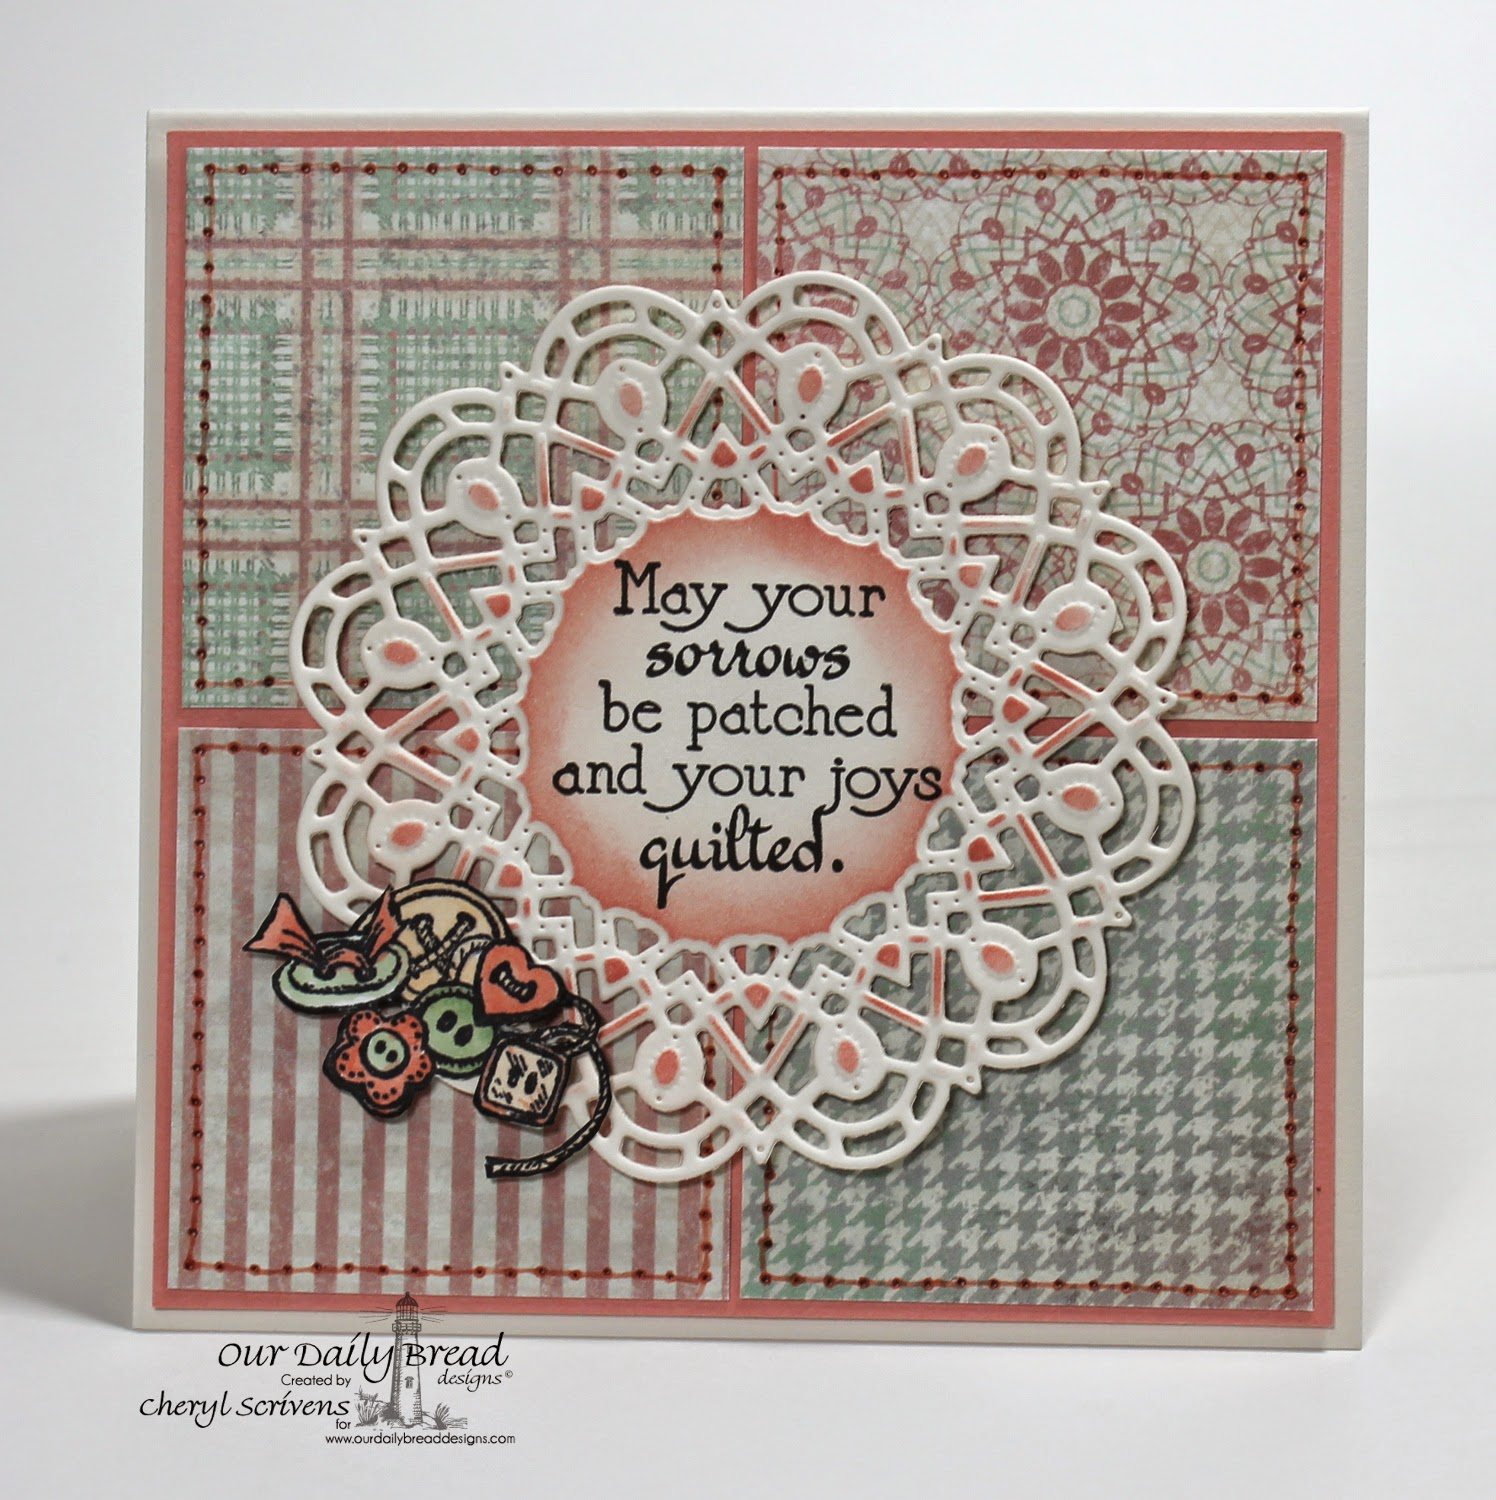 Our Daily Bread Designs, ODBDSLC213, Quilts, Doily Dies, ODBD Soulful Stitches Collection paper pad, CherylQuilts, Designed by Cheryl Scrivens